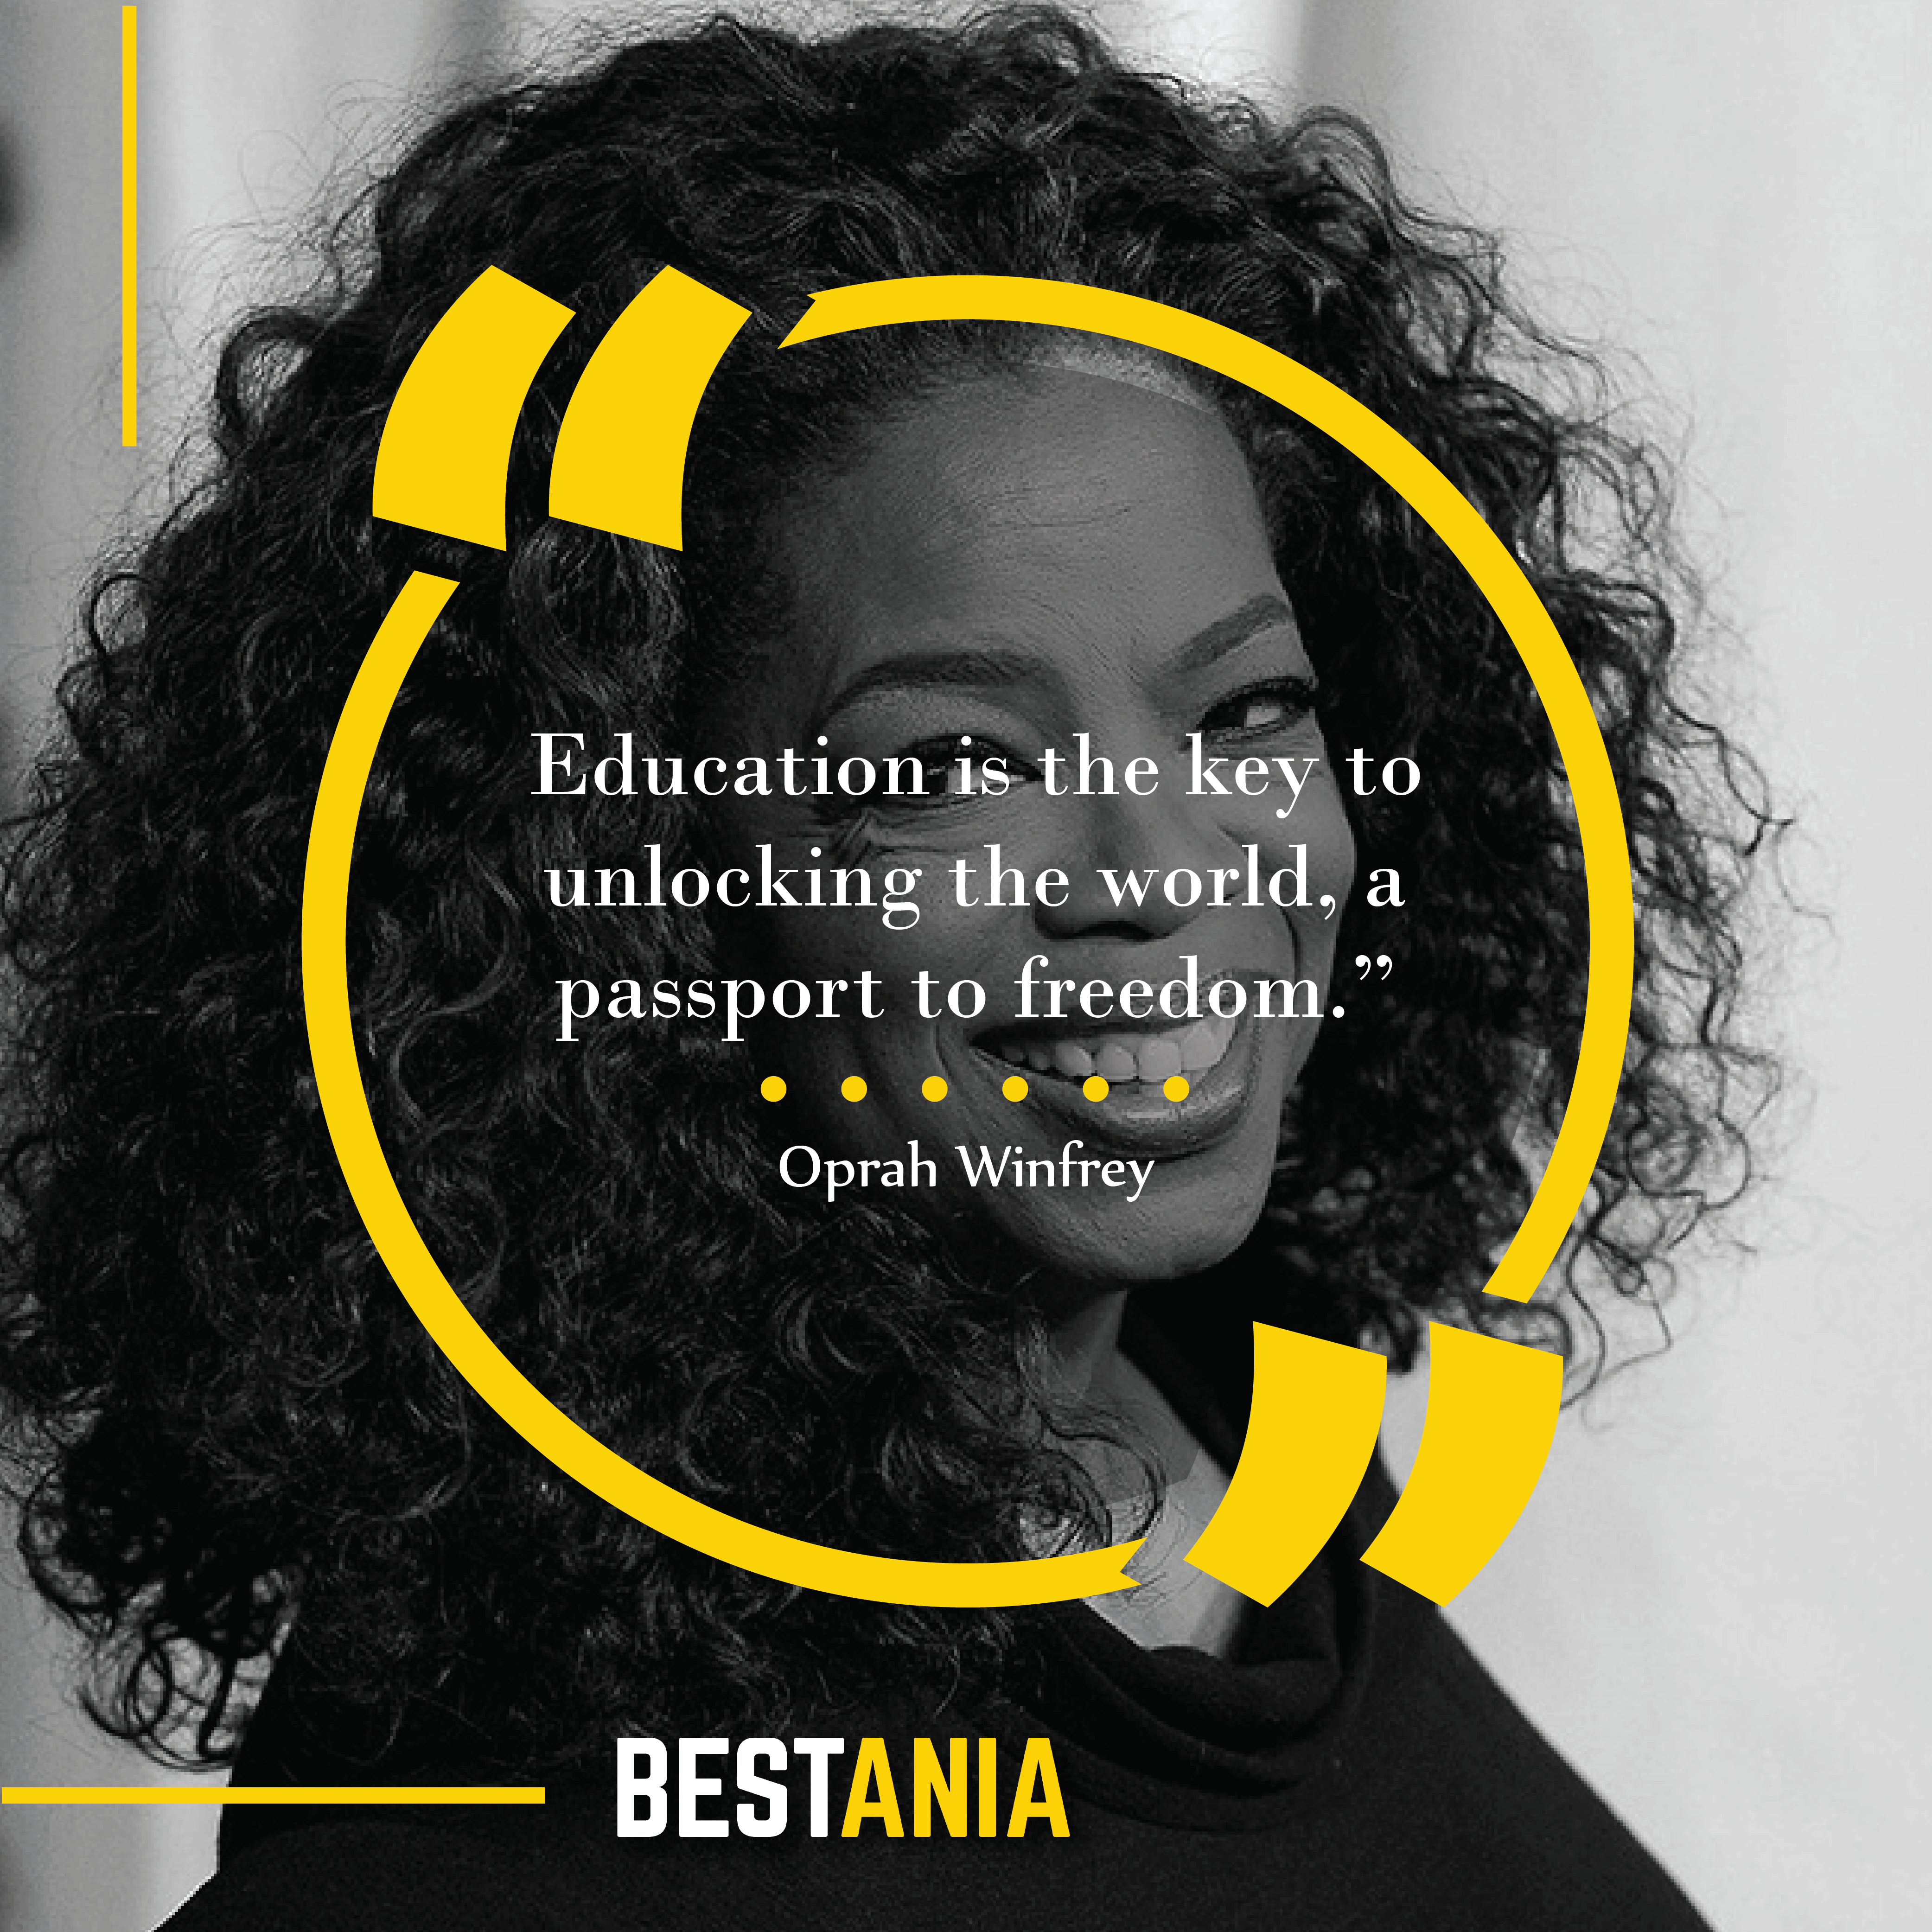 """""""Education is the key to unlocking the world, a passport to freedom."""" - Oprah Winfrey"""